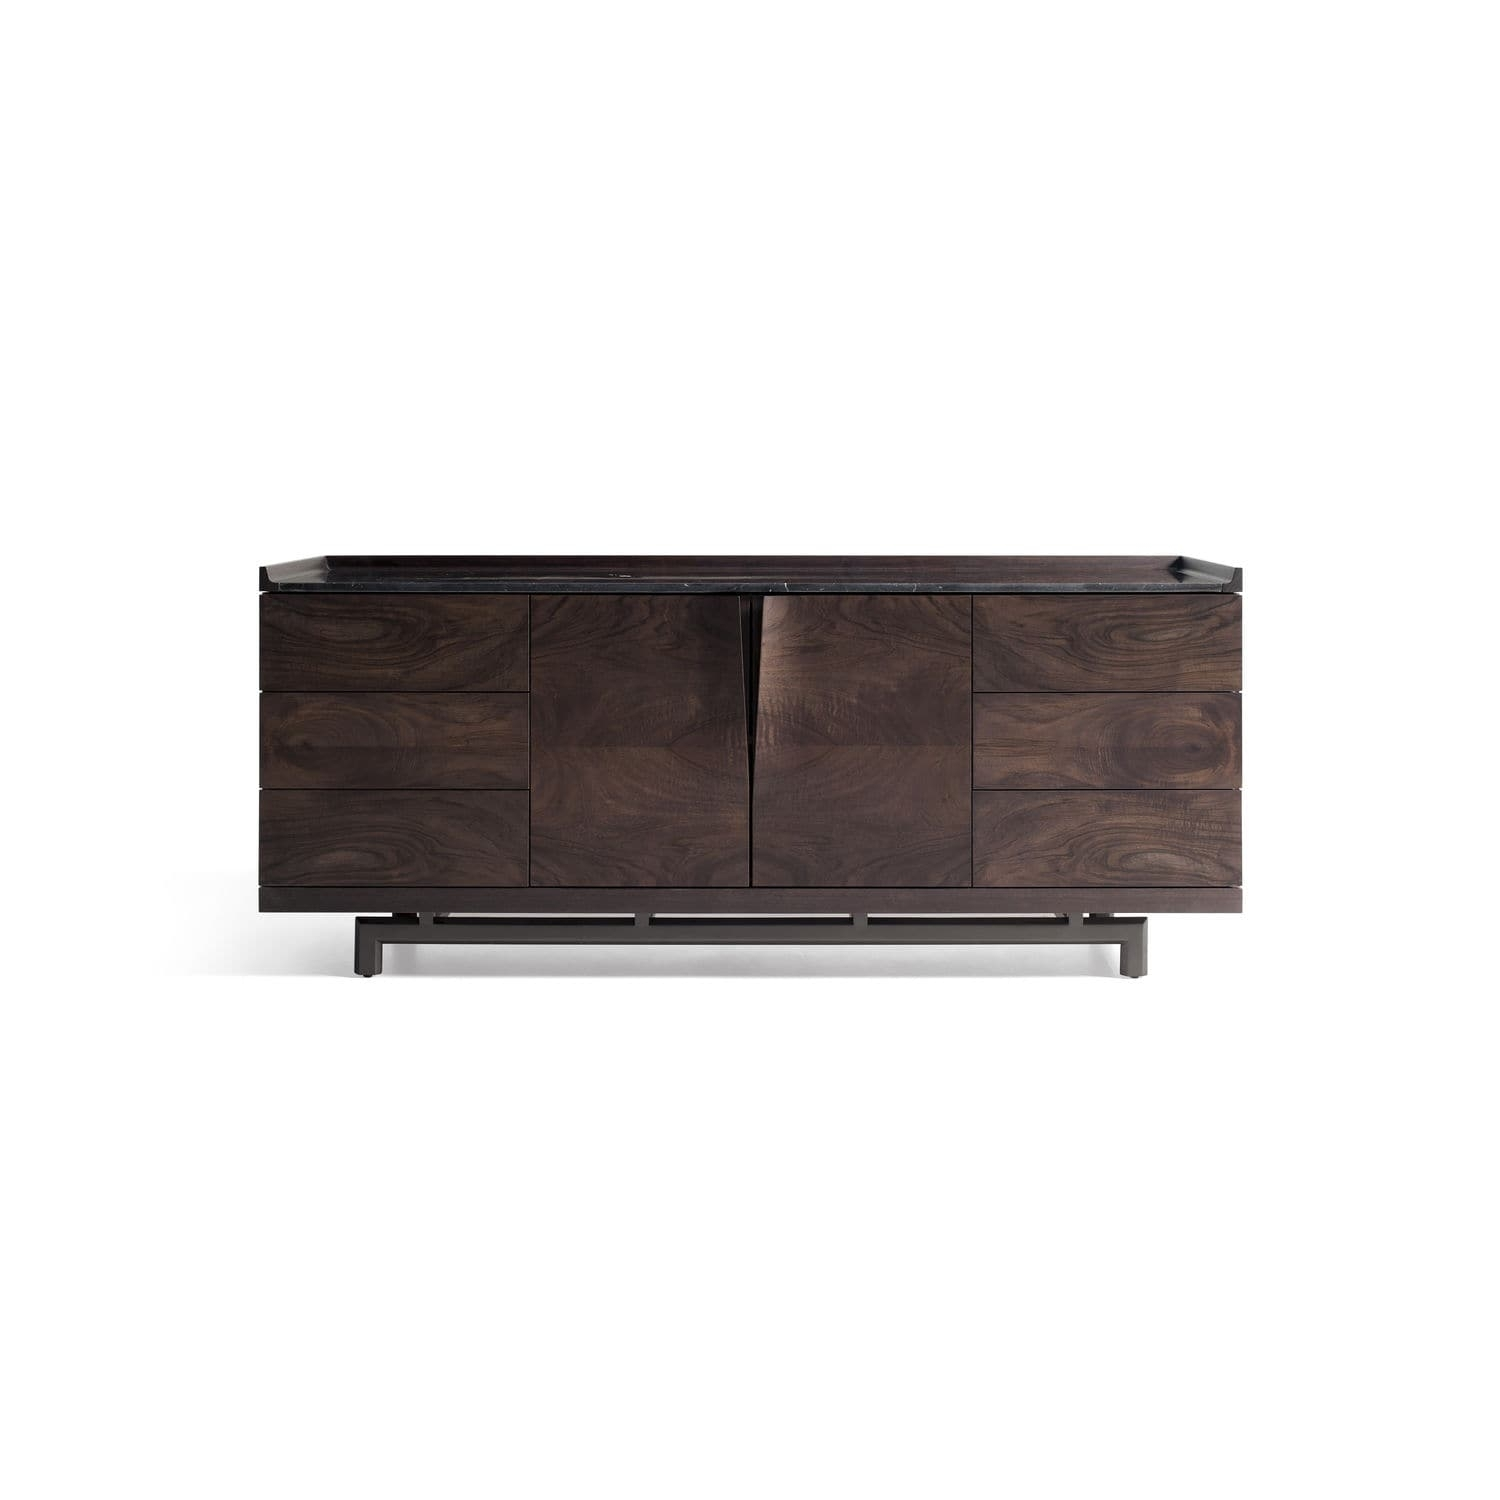 Contemporary Sideboard / Walnut / Contract - Alternative: Manta in Walnut Finish Contempo Sideboards (Image 11 of 30)